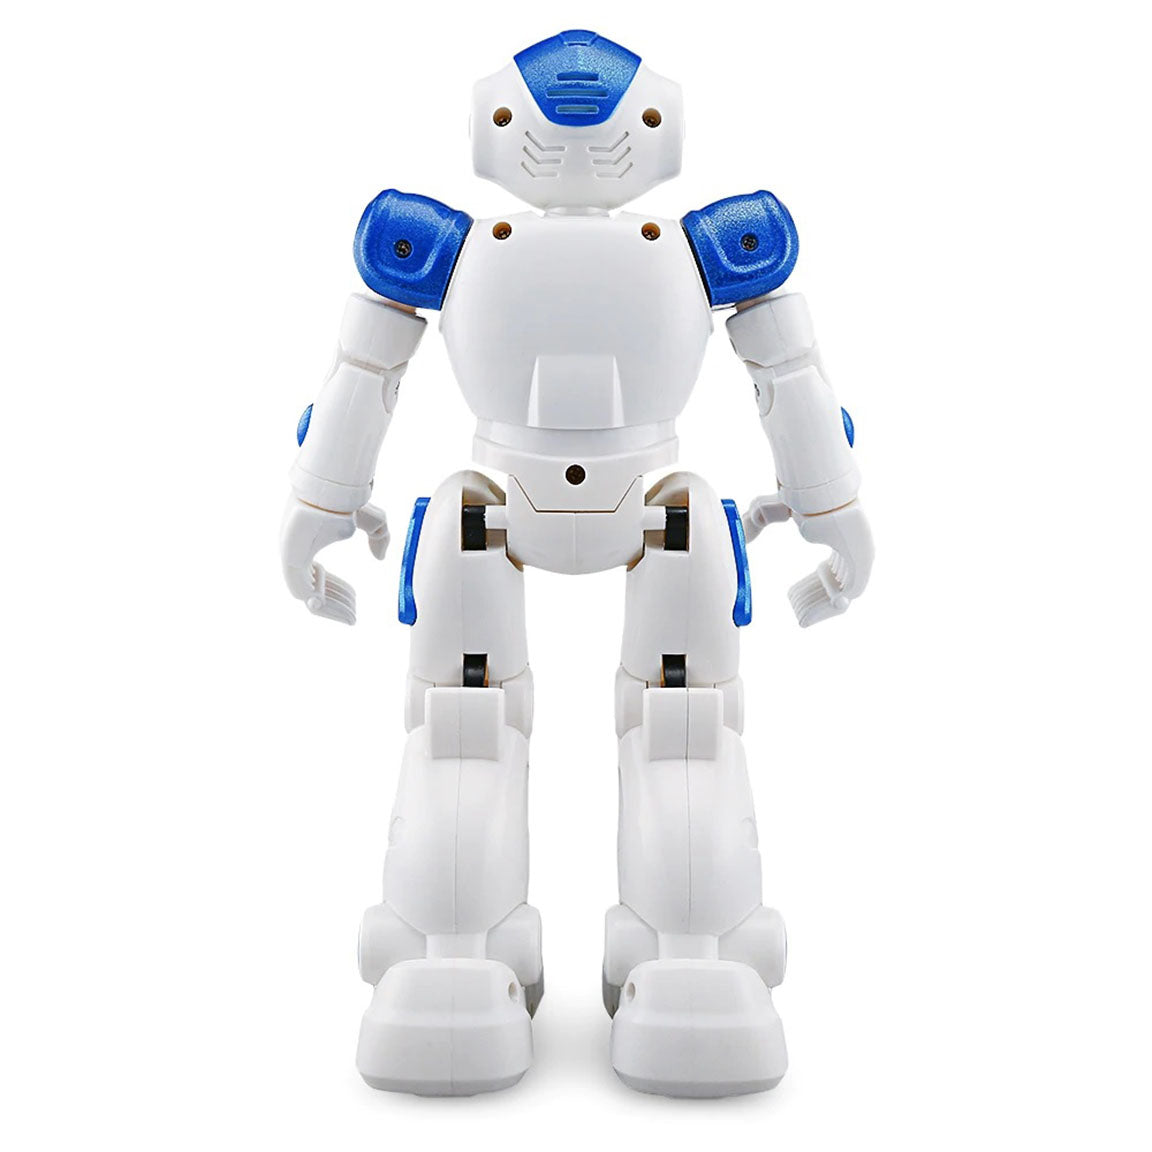 Gesture Control Humanoid Robot Toy